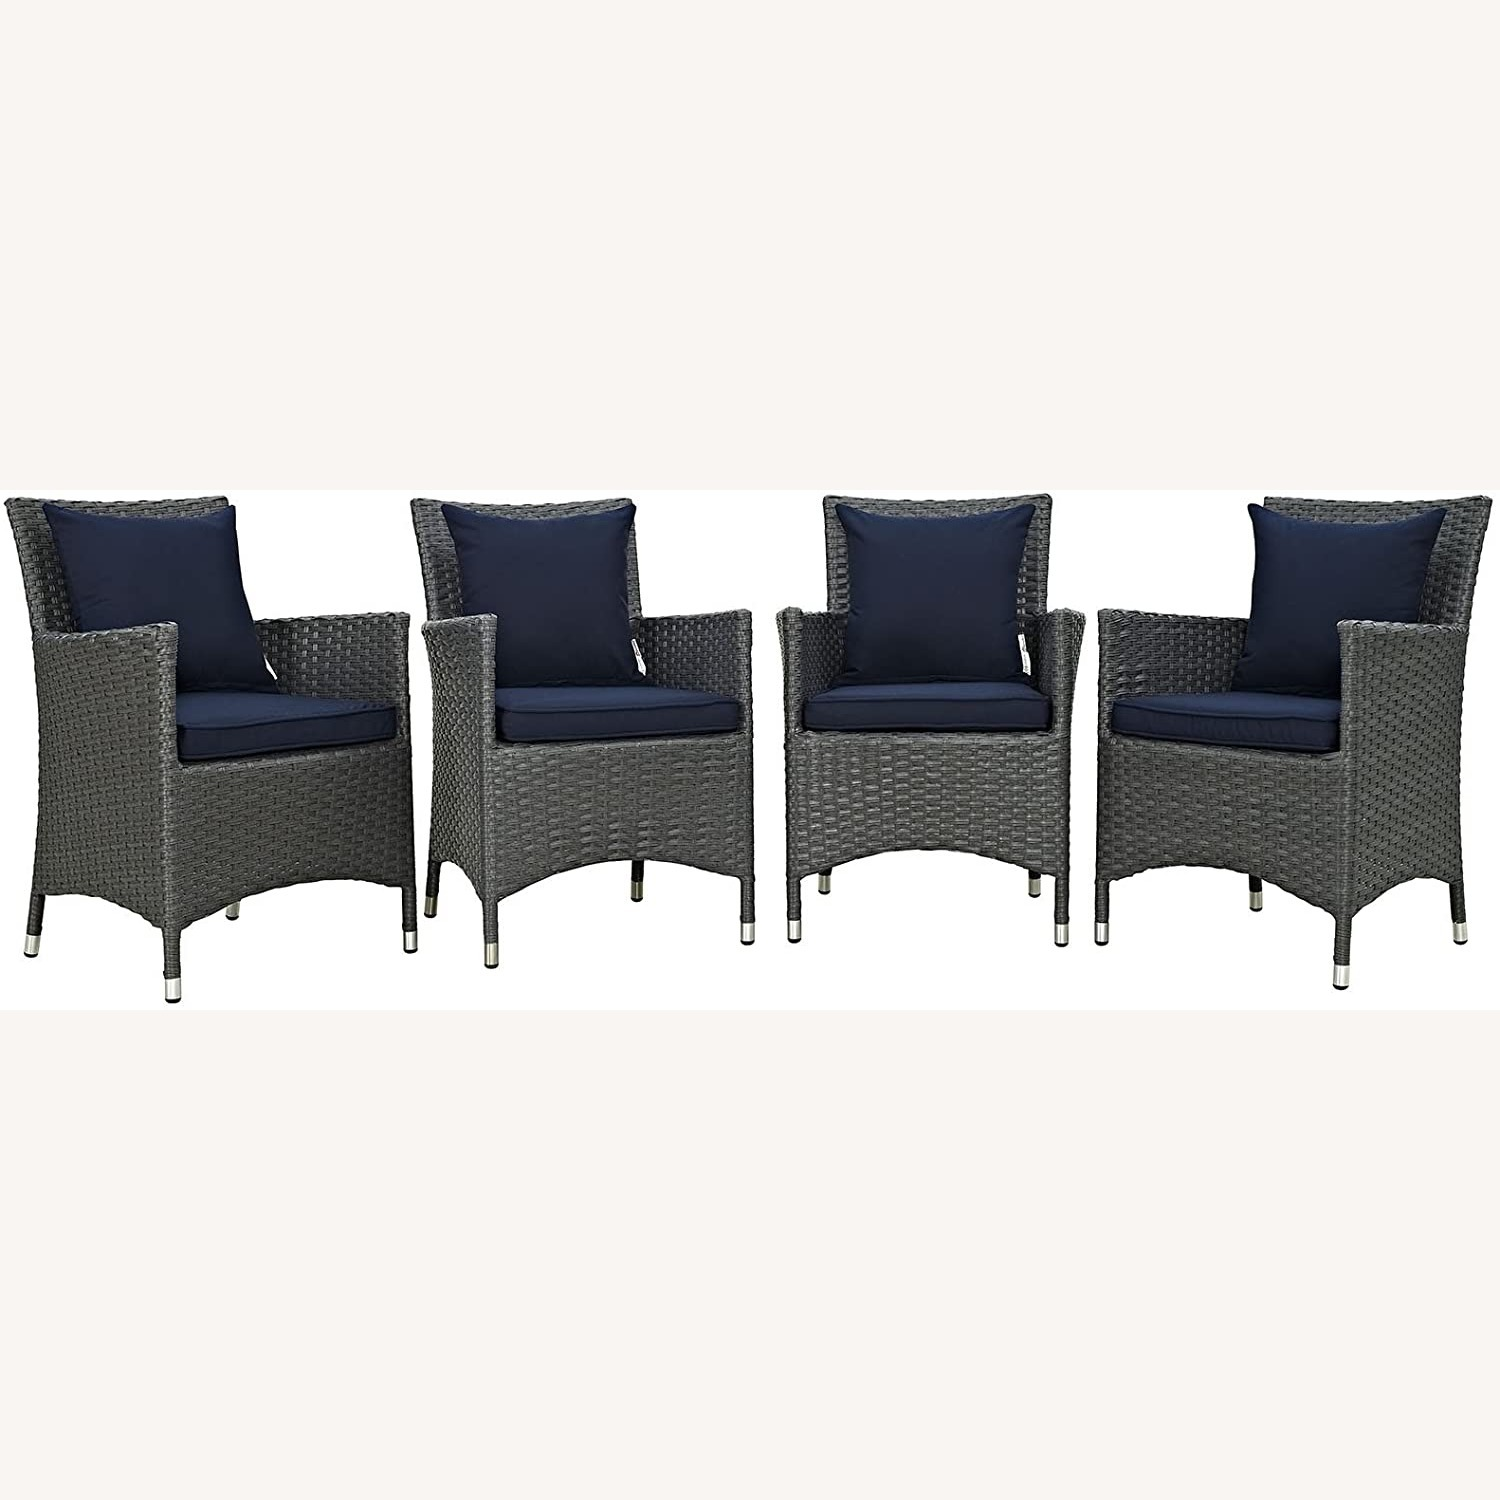 Modern 4-Piece Dining Set In Canvas Navy Finish - image-0